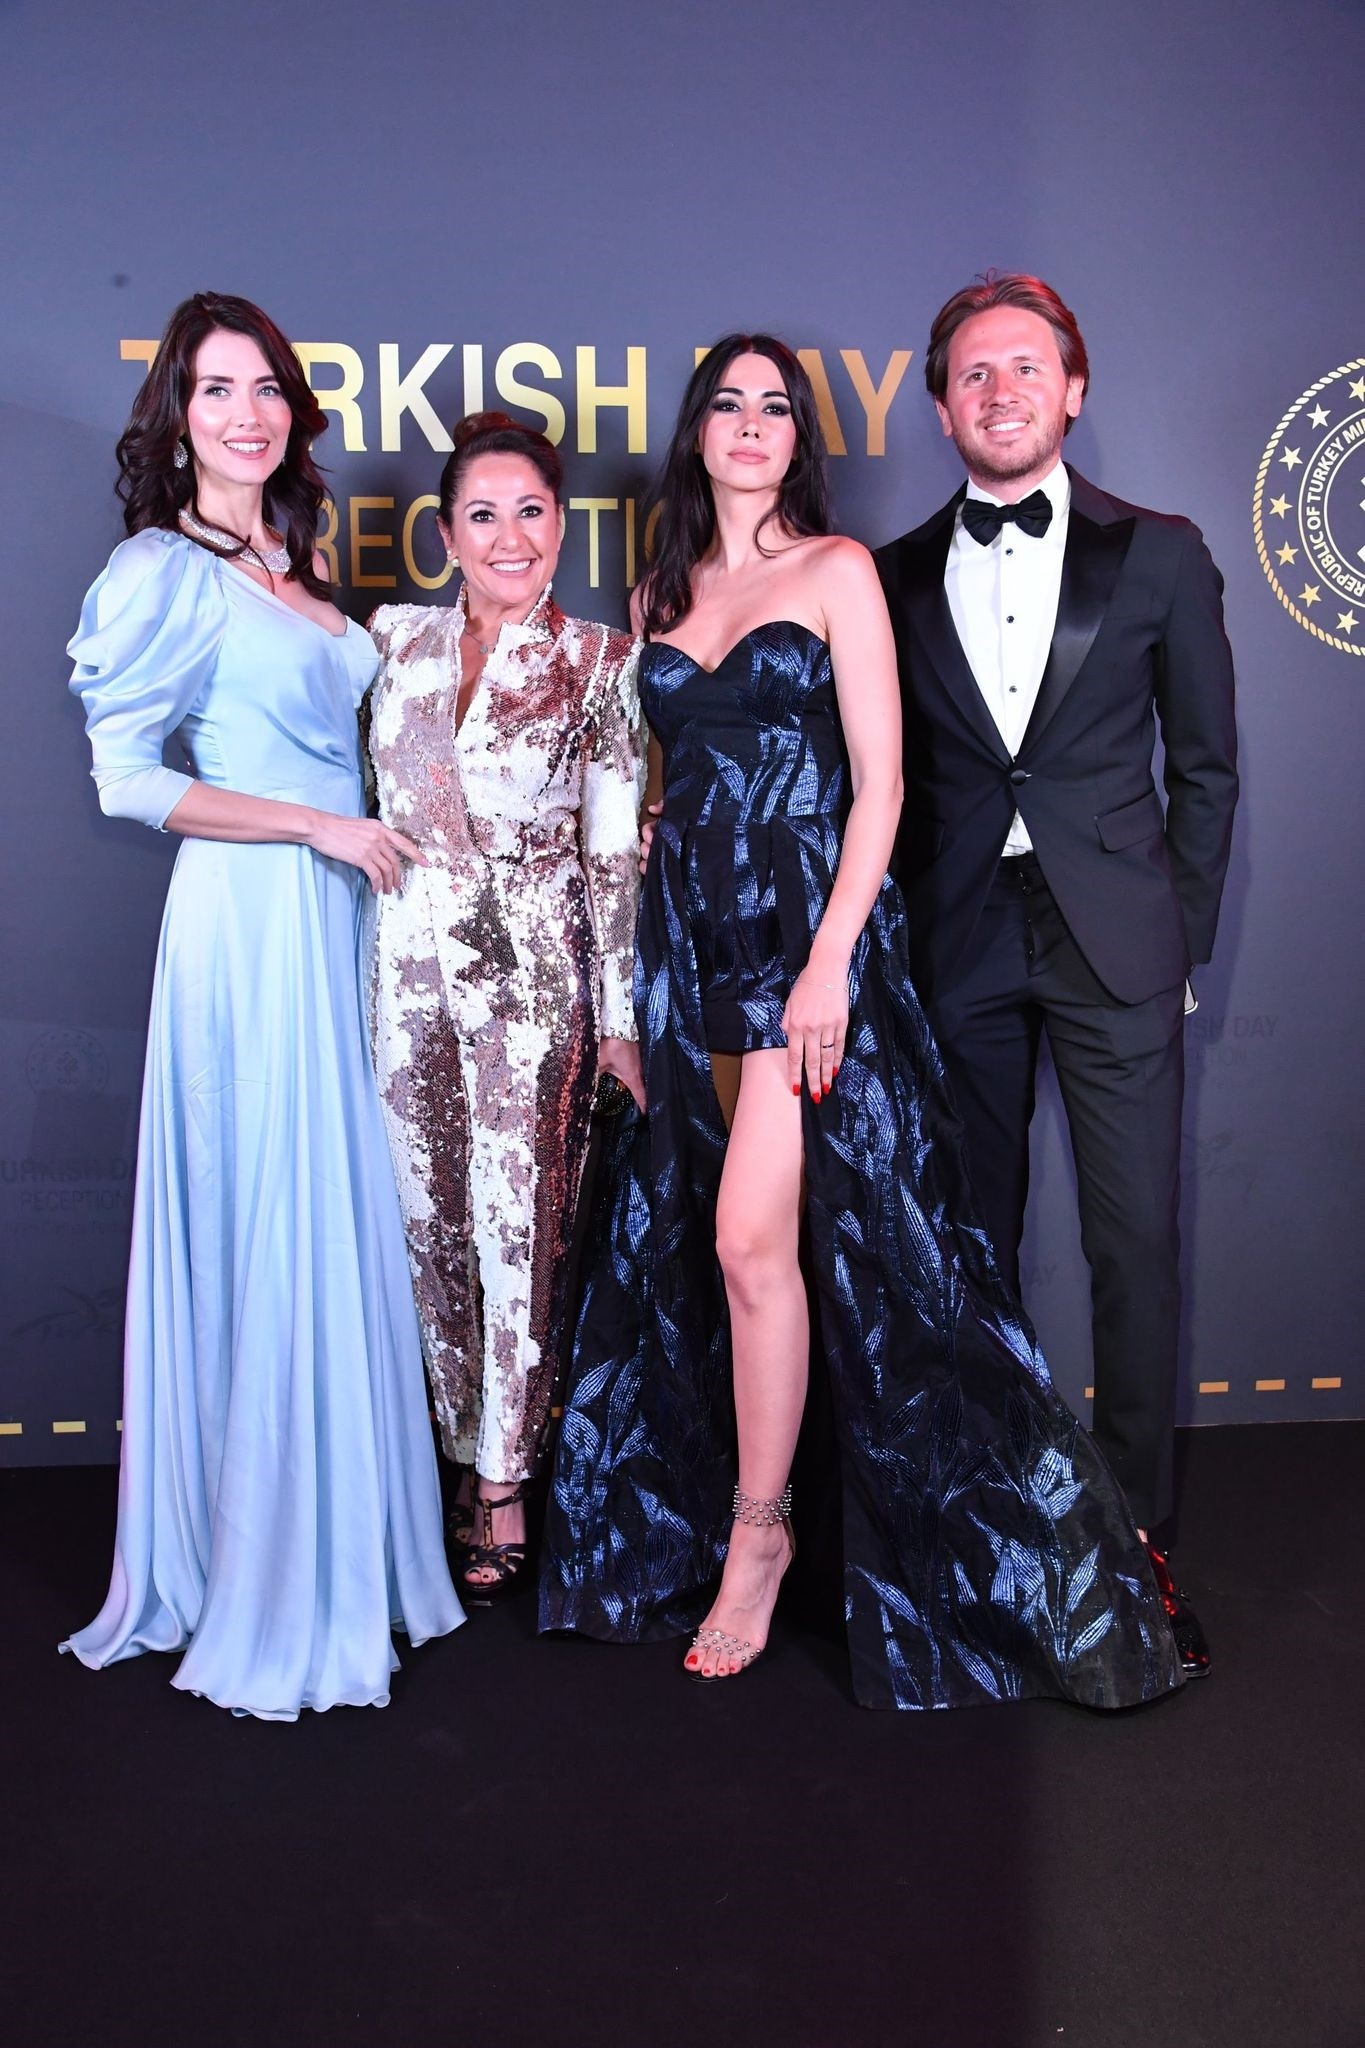 Turkish actress and model Nefise Karatay, Gonca Karaüç and Turkish blogger and vlogger Zeynep and her husband Alkan Zor.